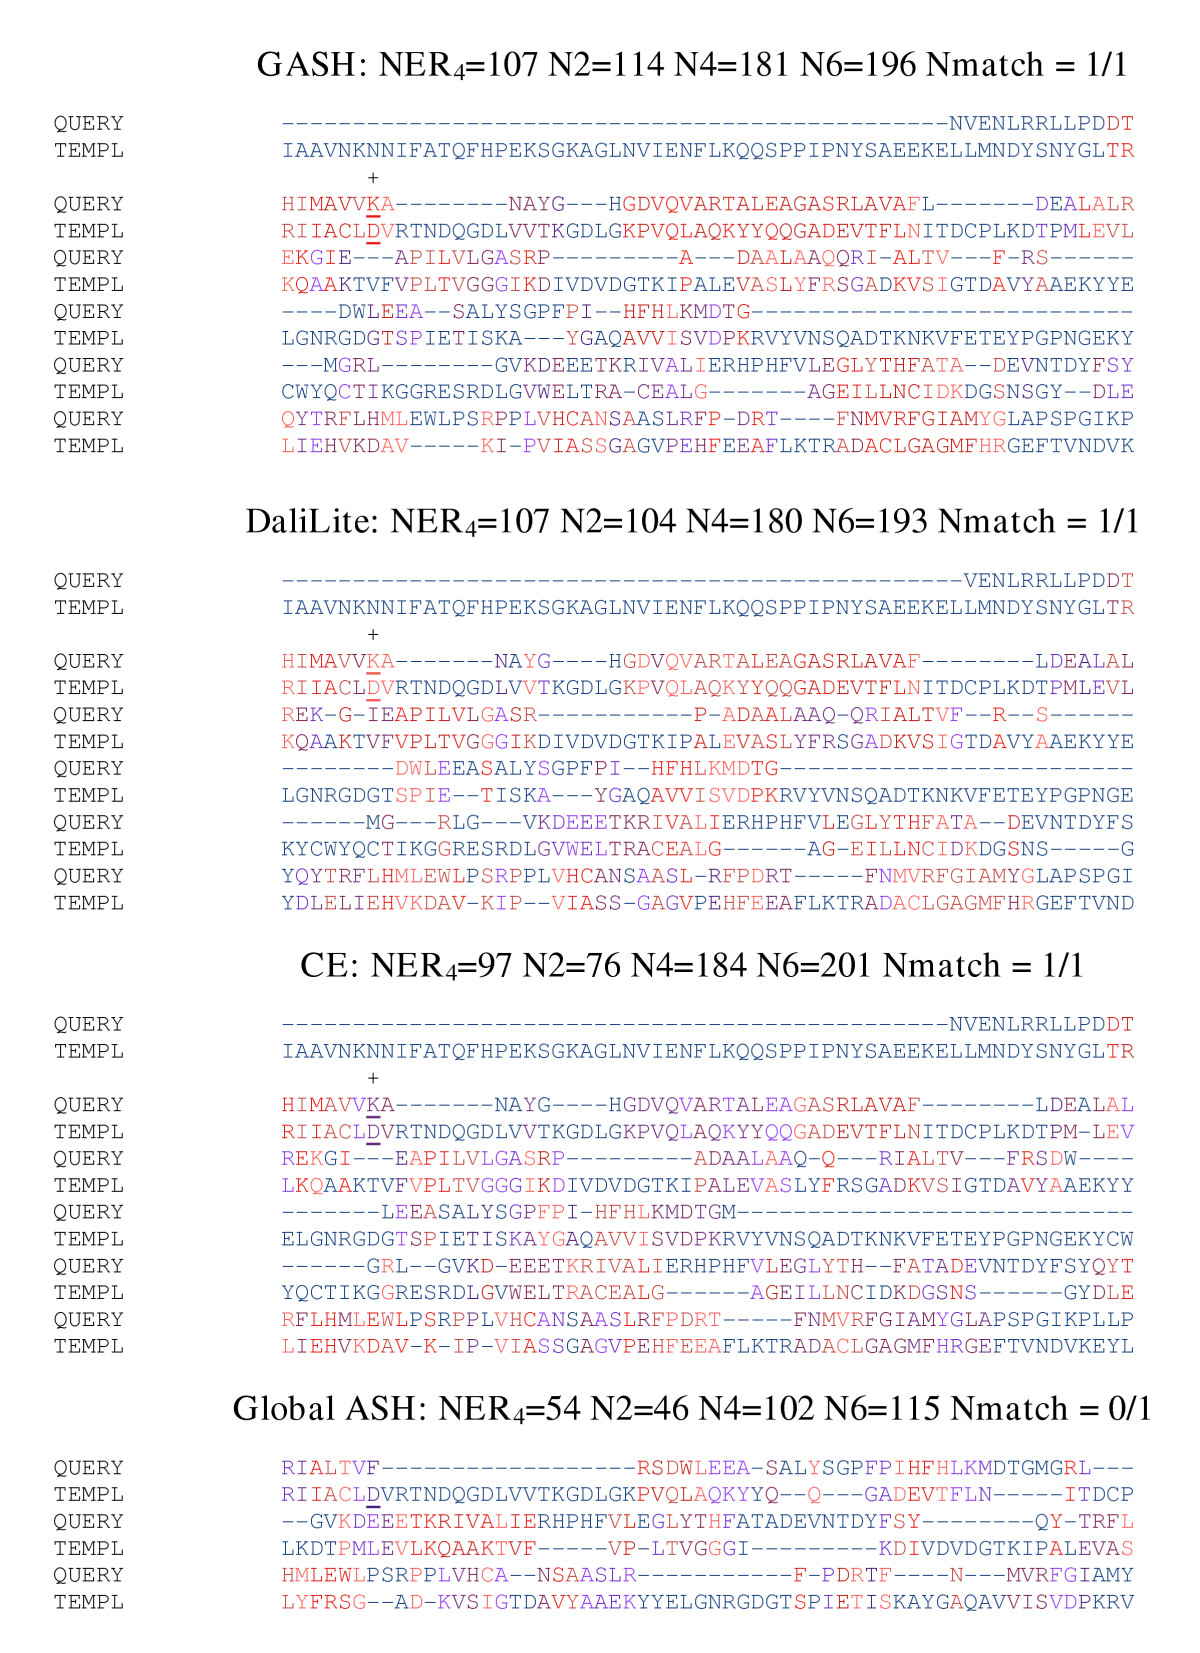 http://static-content.springer.com/image/art%3A10.1186%2F1471-2105-6-221/MediaObjects/12859_2005_Article_546_Fig9_HTML.jpg